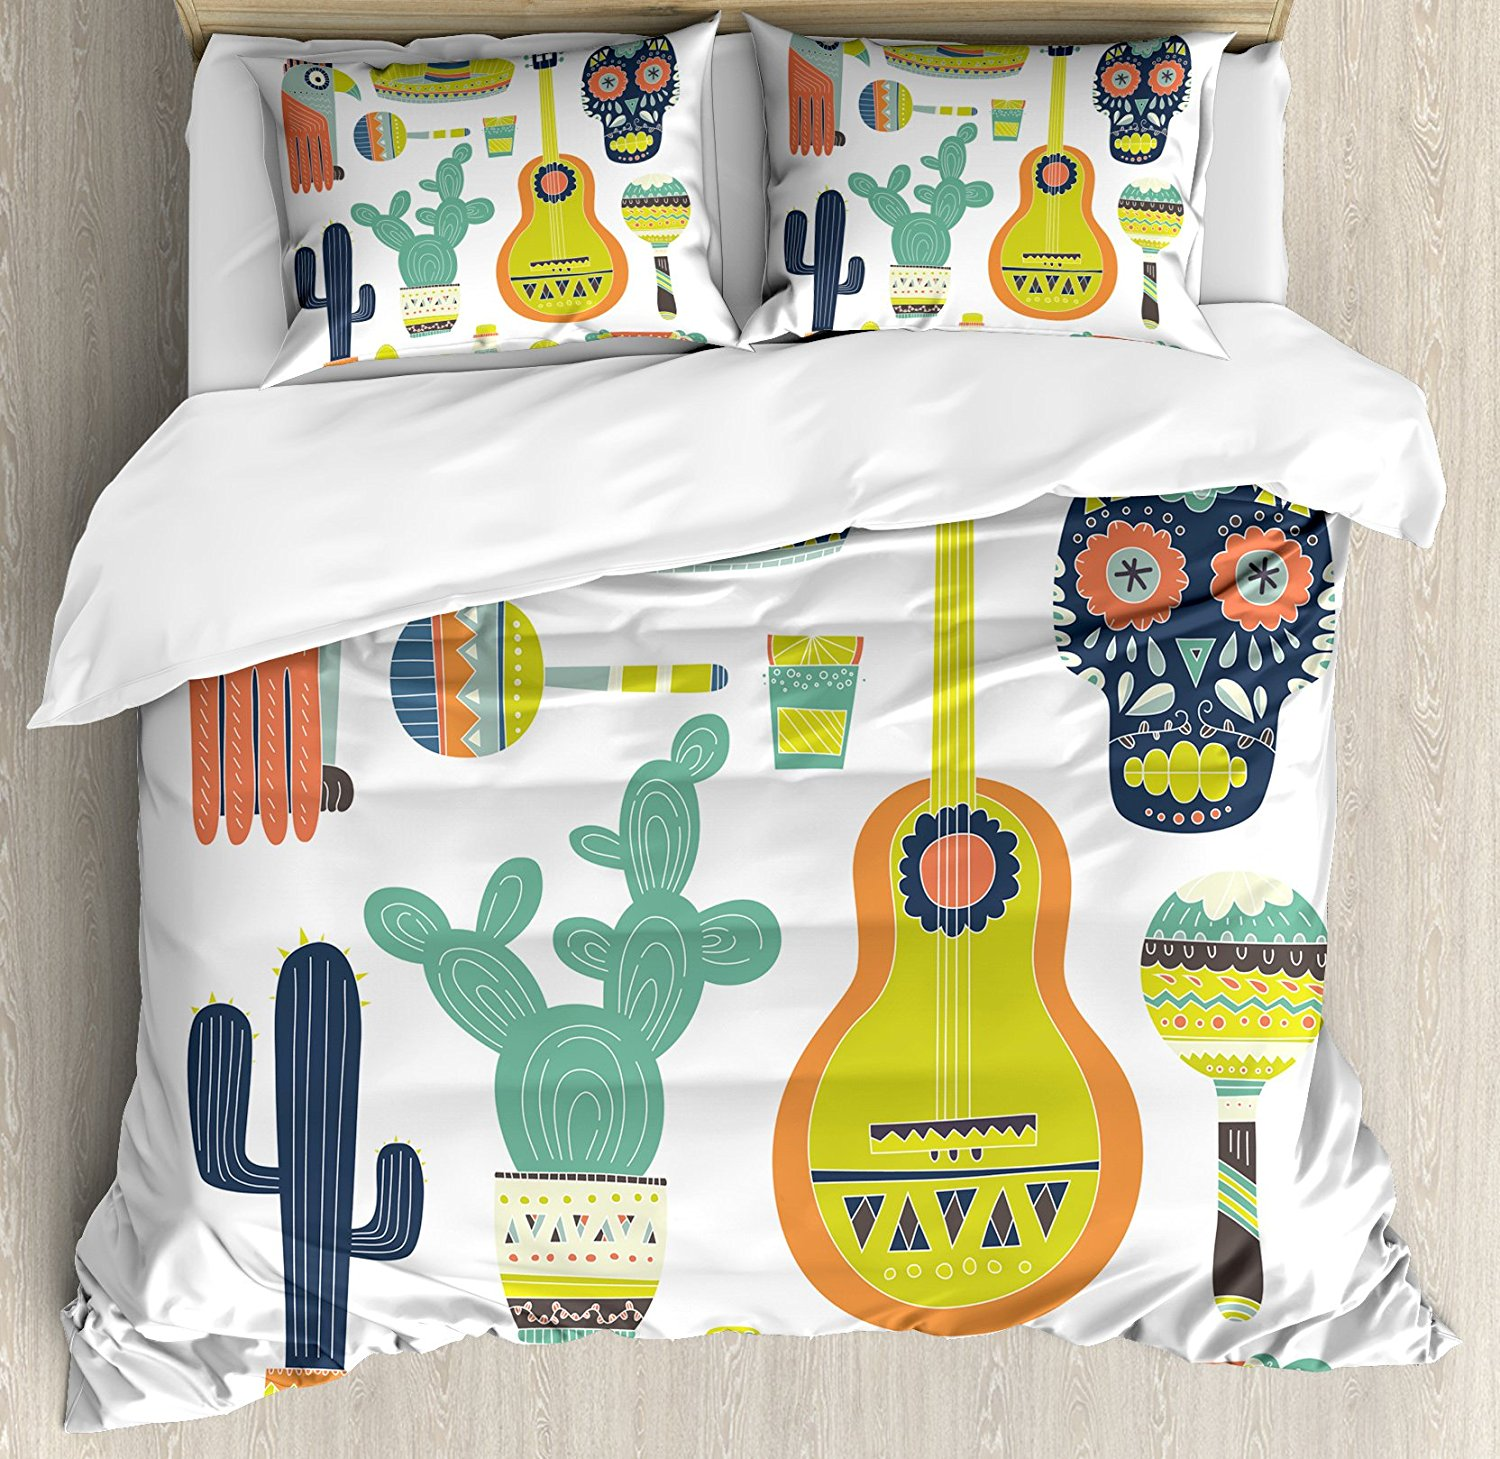 Fiesta Duvet Cover Set Symbols from Mexico Guitar Face Aztec Mask Tequila Skull Musical Instruments Taco 4 Piece Bedding Set